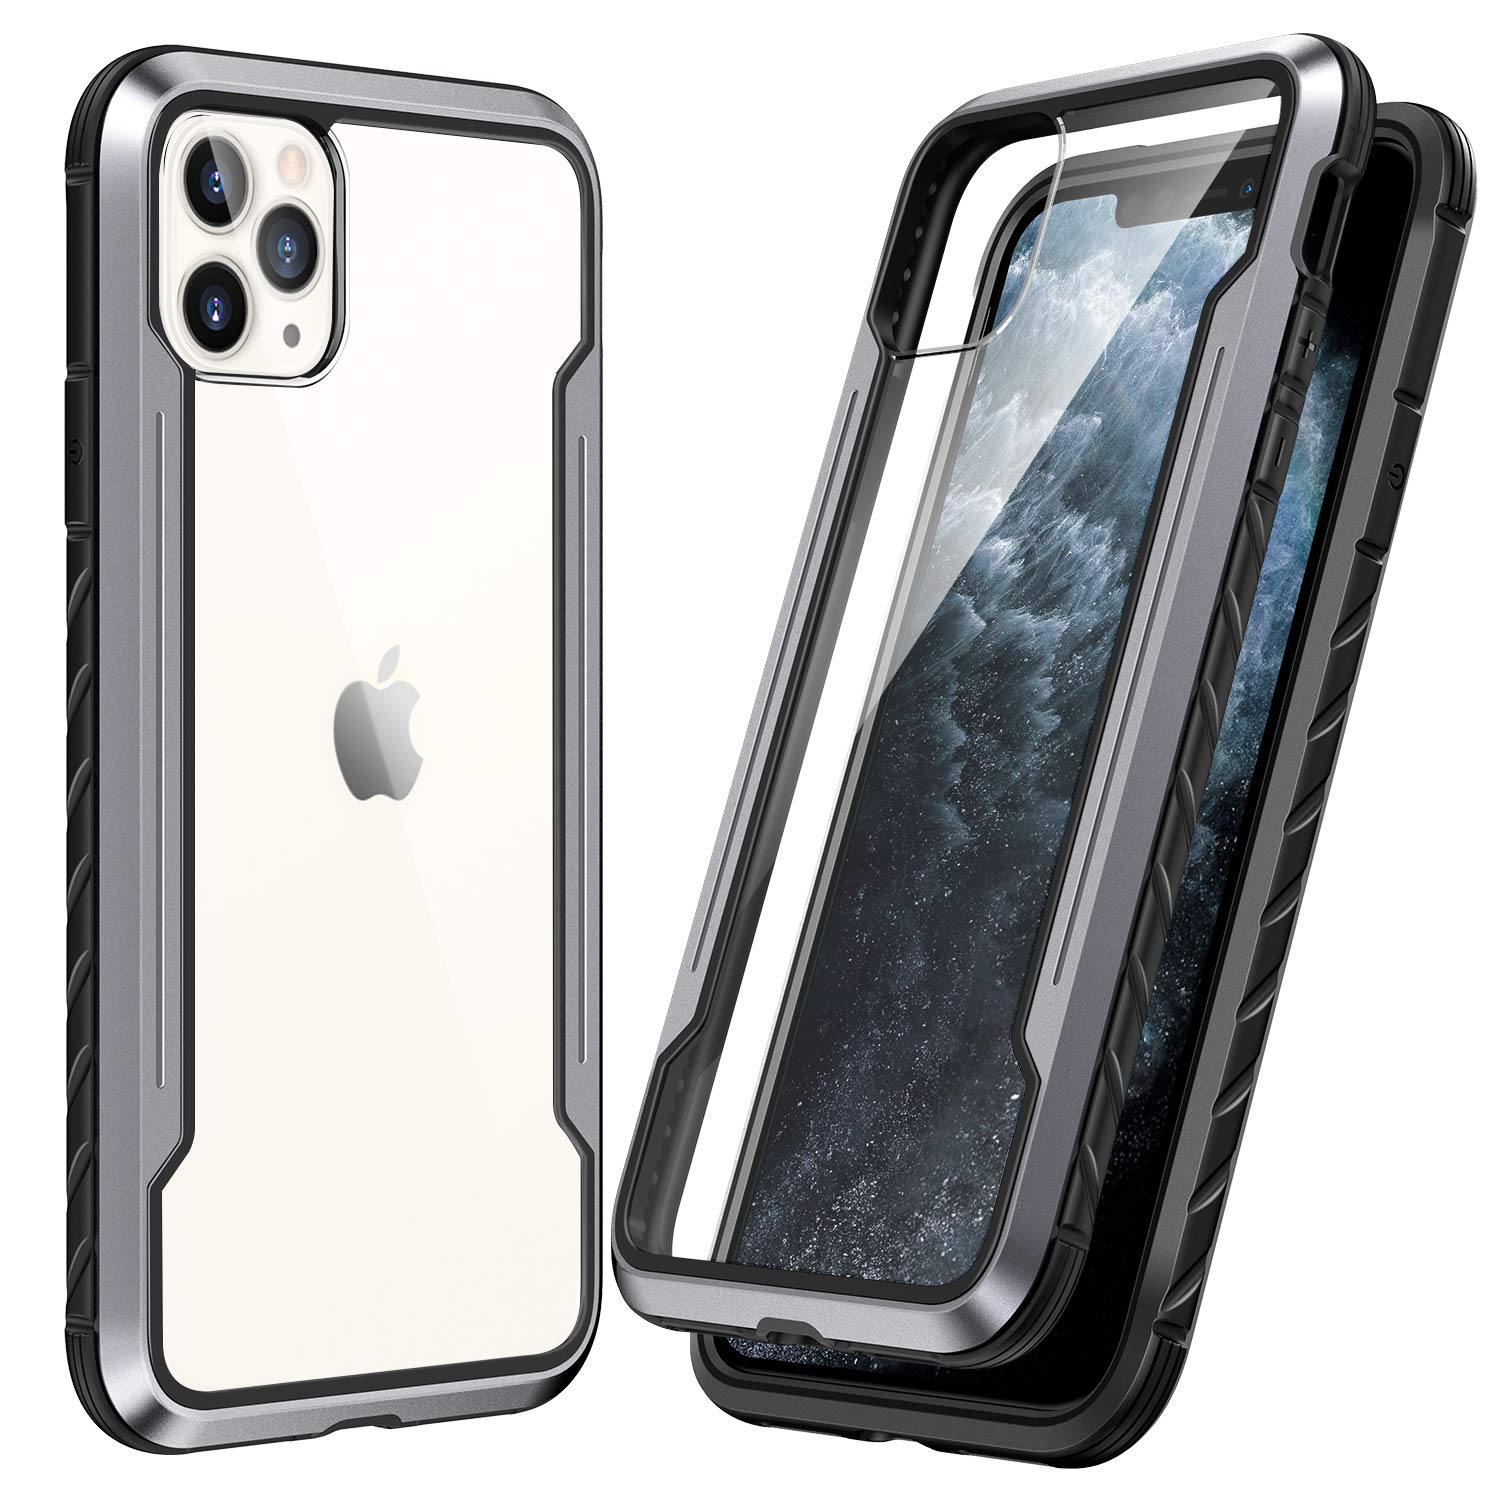 SmartDevil Shatterproof Series Designed for iPhone 11 Pro Cases, Passed Military Grade Drop Test, Anodized Aluminum, TPU, and Hard PC Protective Case for iPhone 11 Pro 5.8 Inch (Gray)